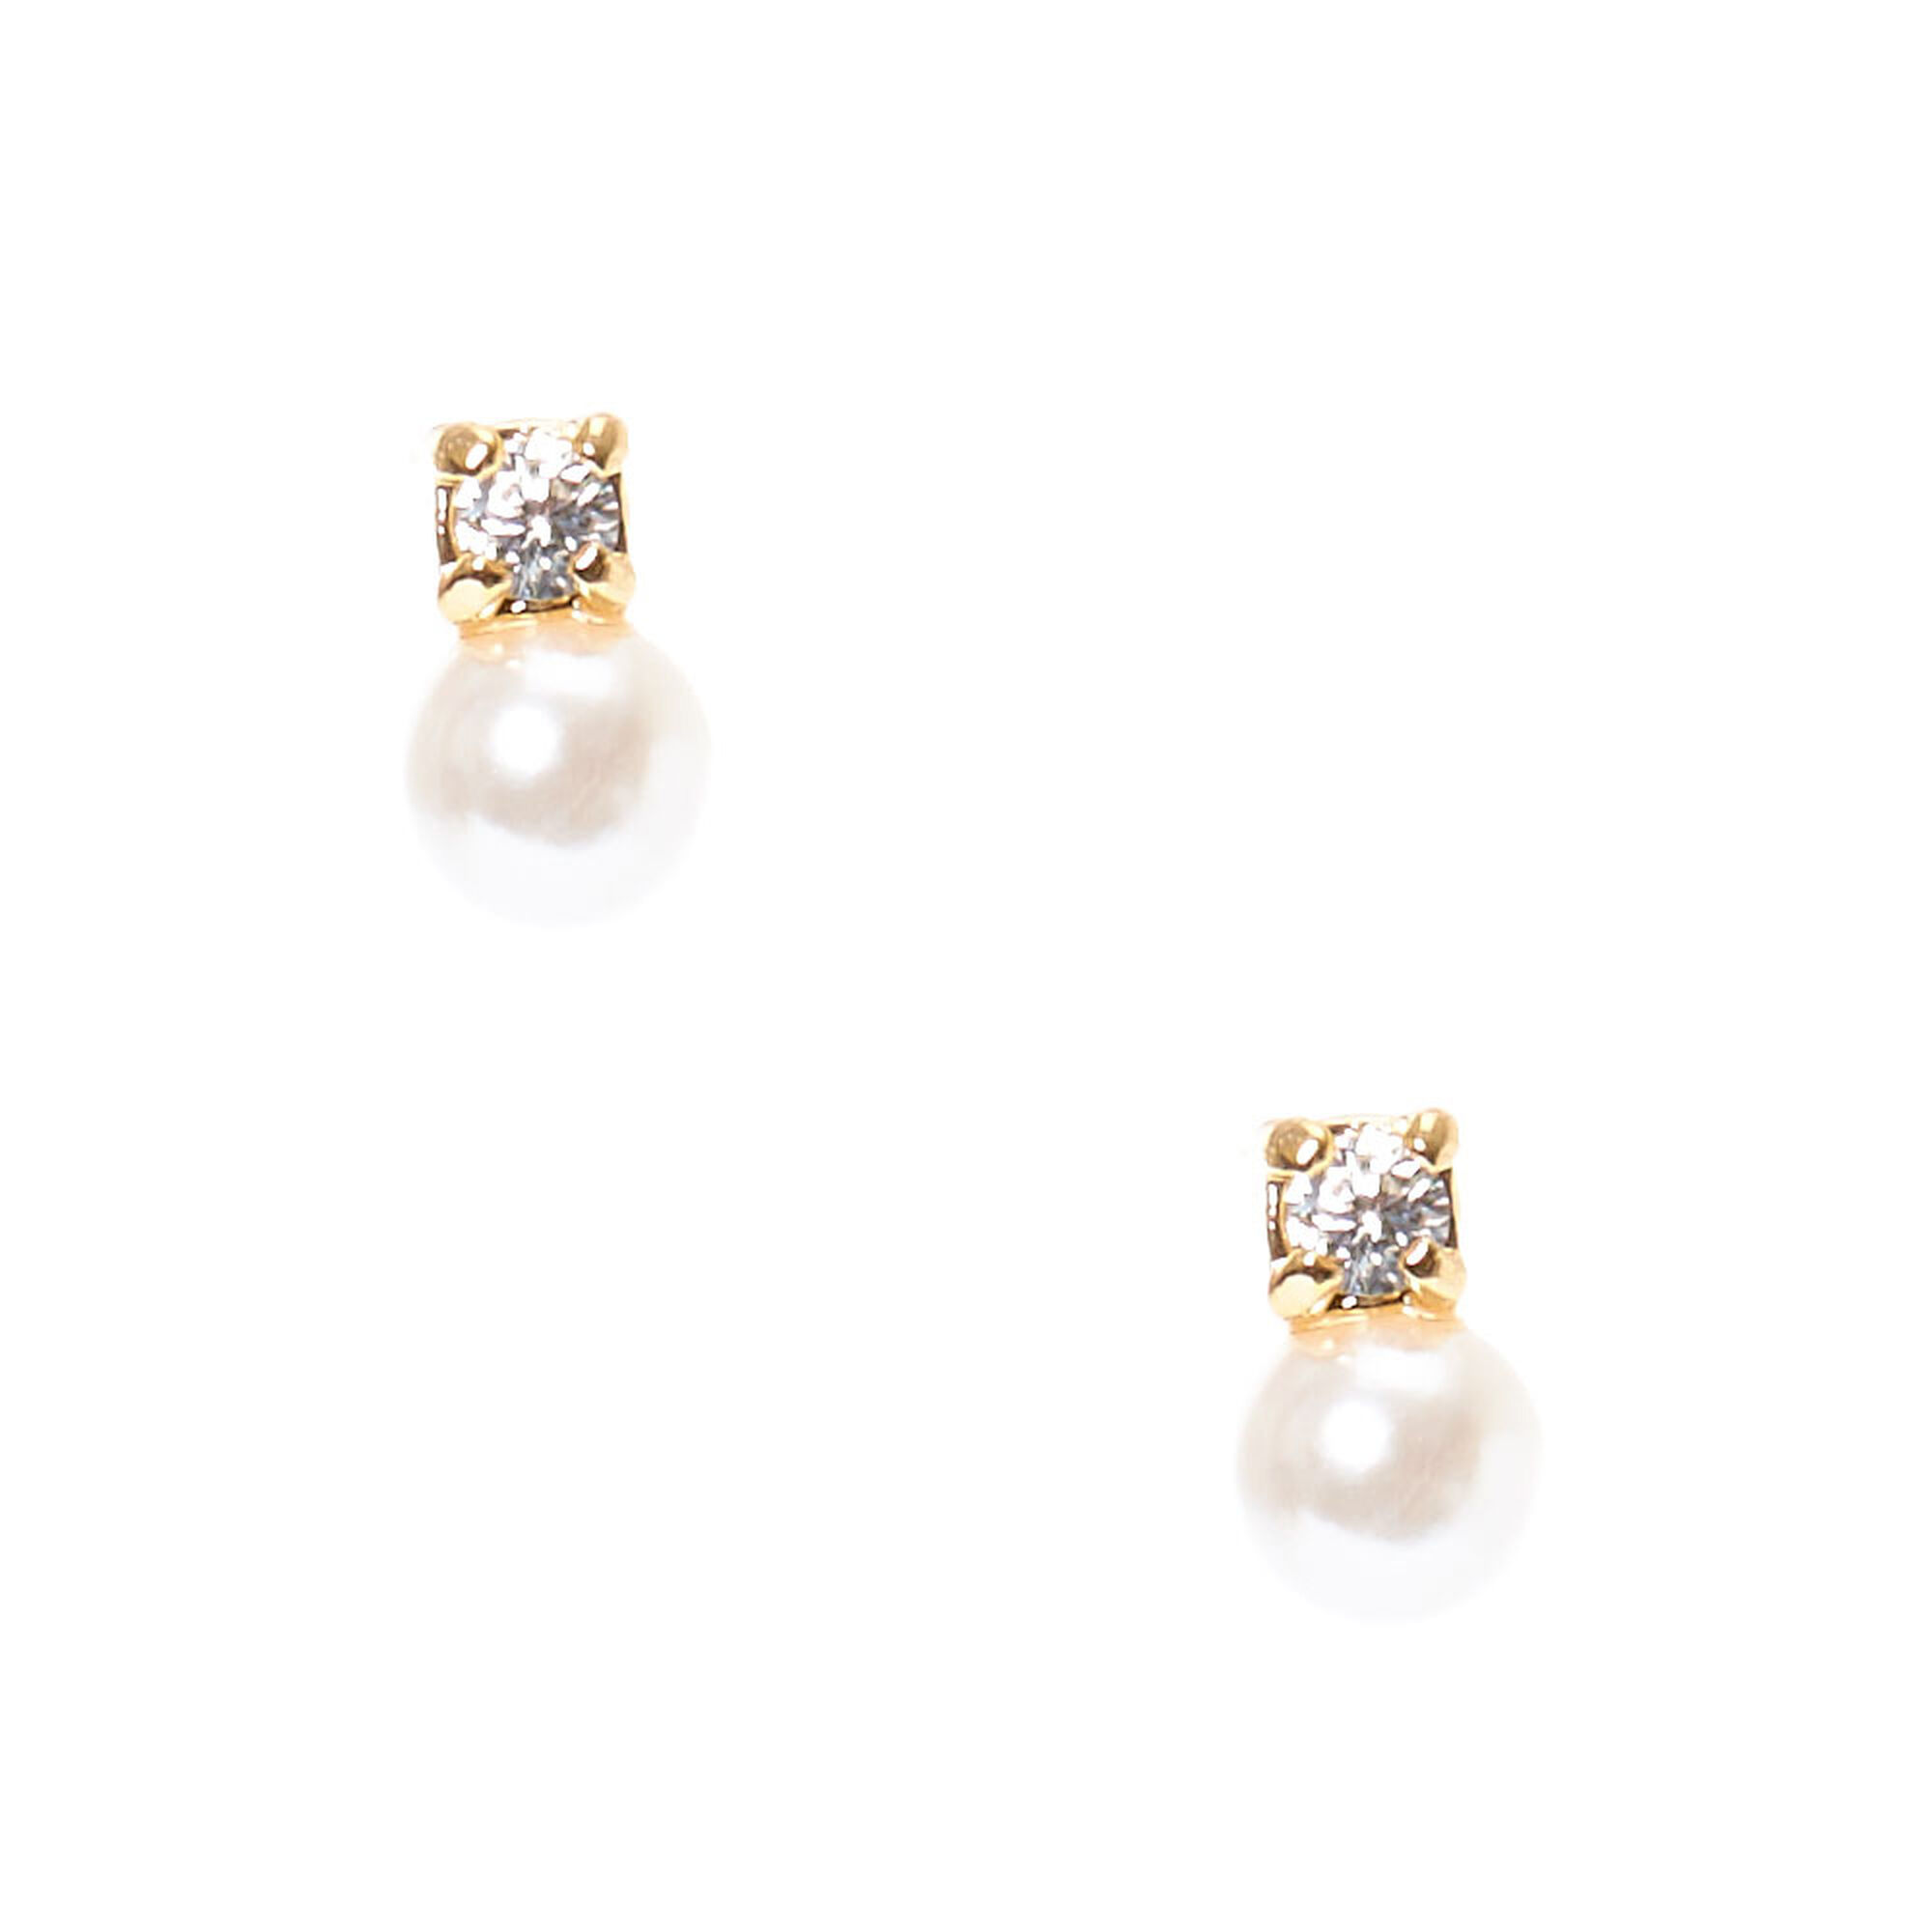 Gold Framed Cubic Zirconia and Faux Ivory Pearl Duo Stud Earrings